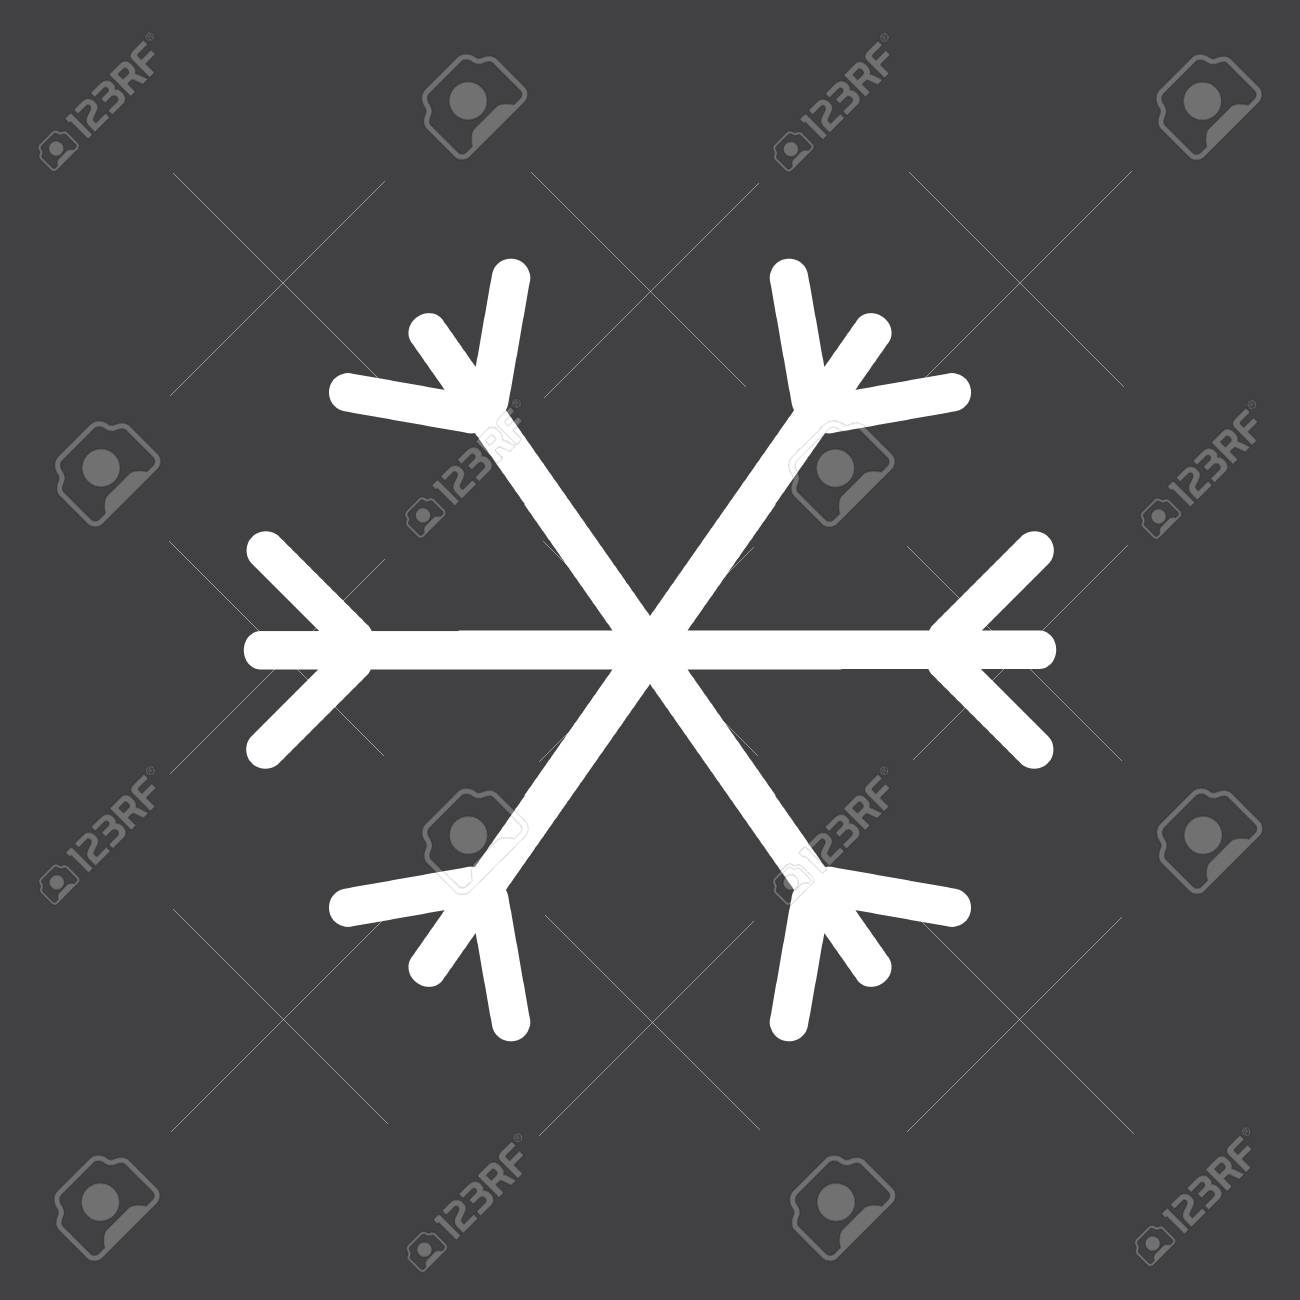 Car Winter Mode Icon Car Dashboard Icon Vector Illustration - Car image sign of dashboardcar dashboard icons stock images royaltyfree imagesvectors